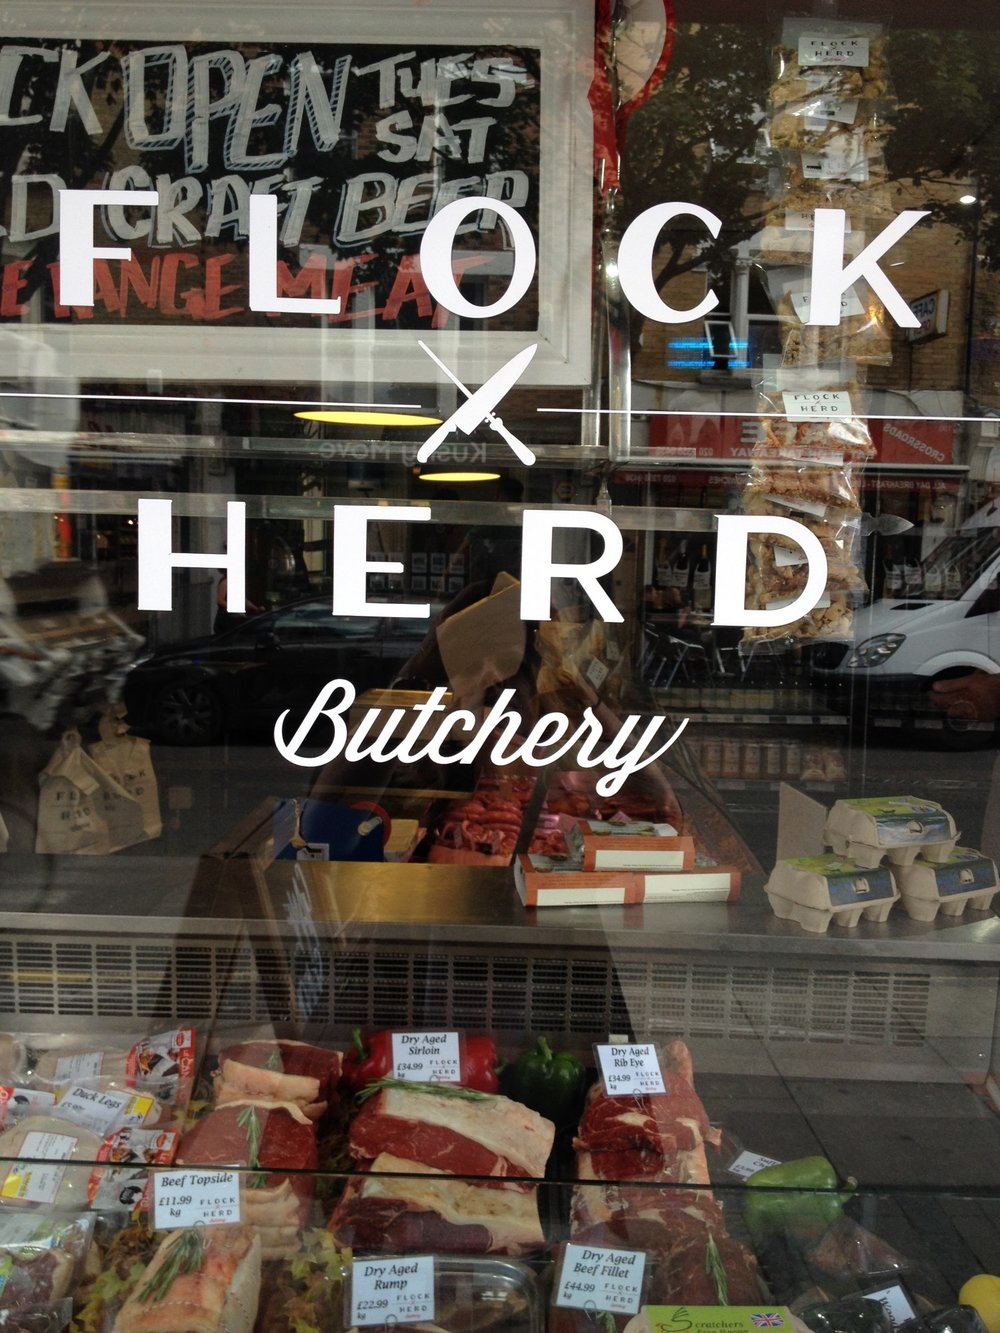 Flock and Herd - Butchers.jpg